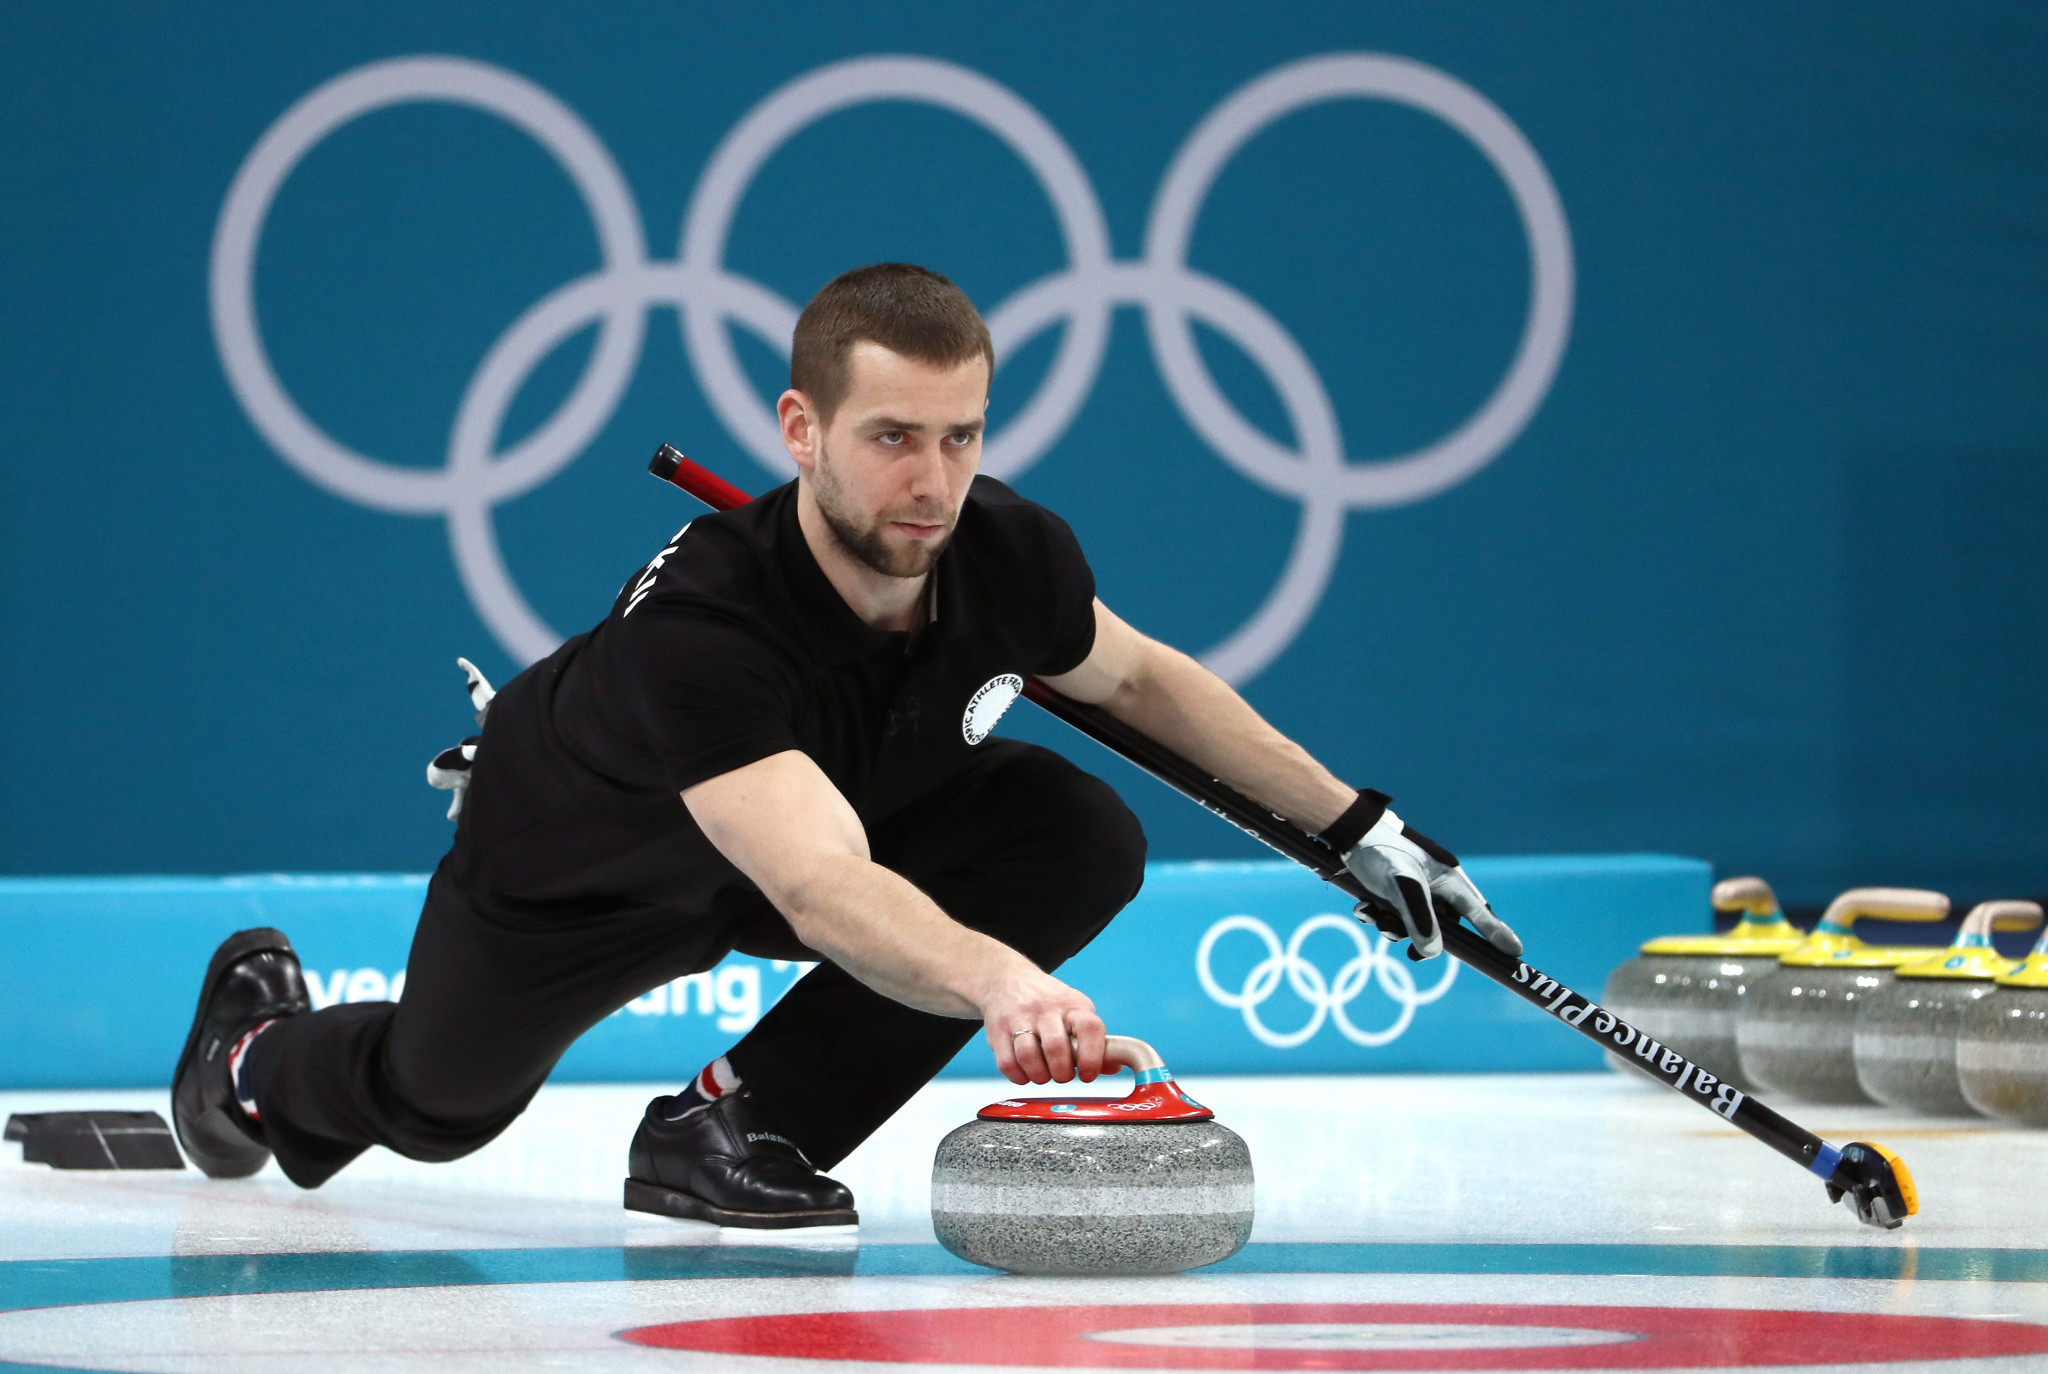 Russian curler formally charged with doping offence at Pyeongchang 2018